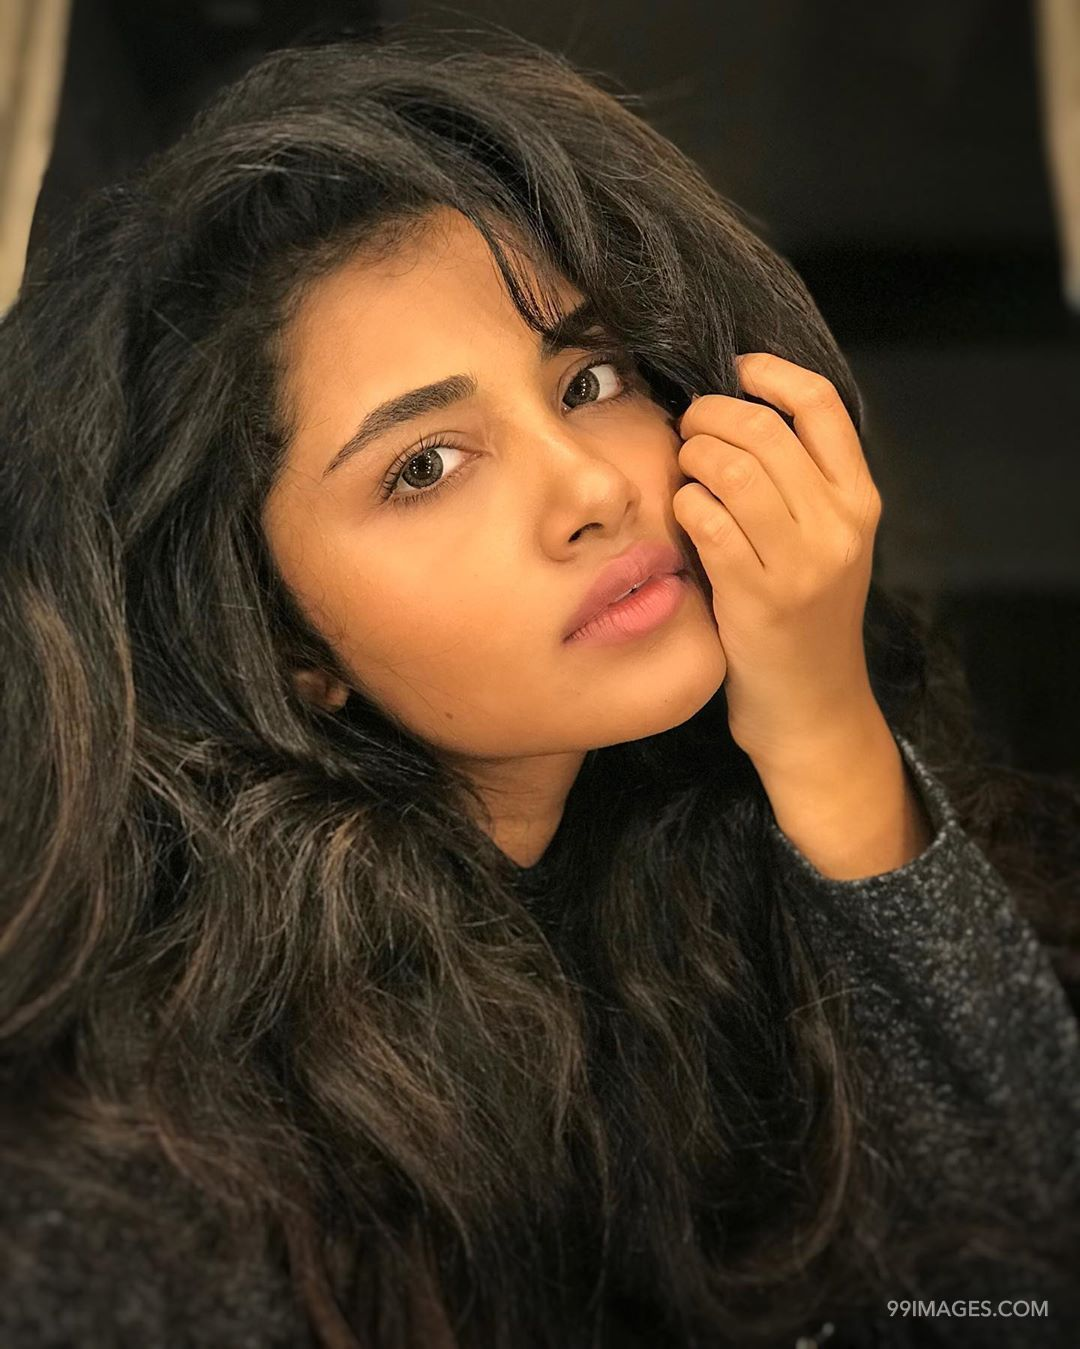 Anupama Parameswaran Latest Hot HD Photoshoot Stills & Mobile Wallpapers HD (1080p) (29929) - Anupama Parameswaran